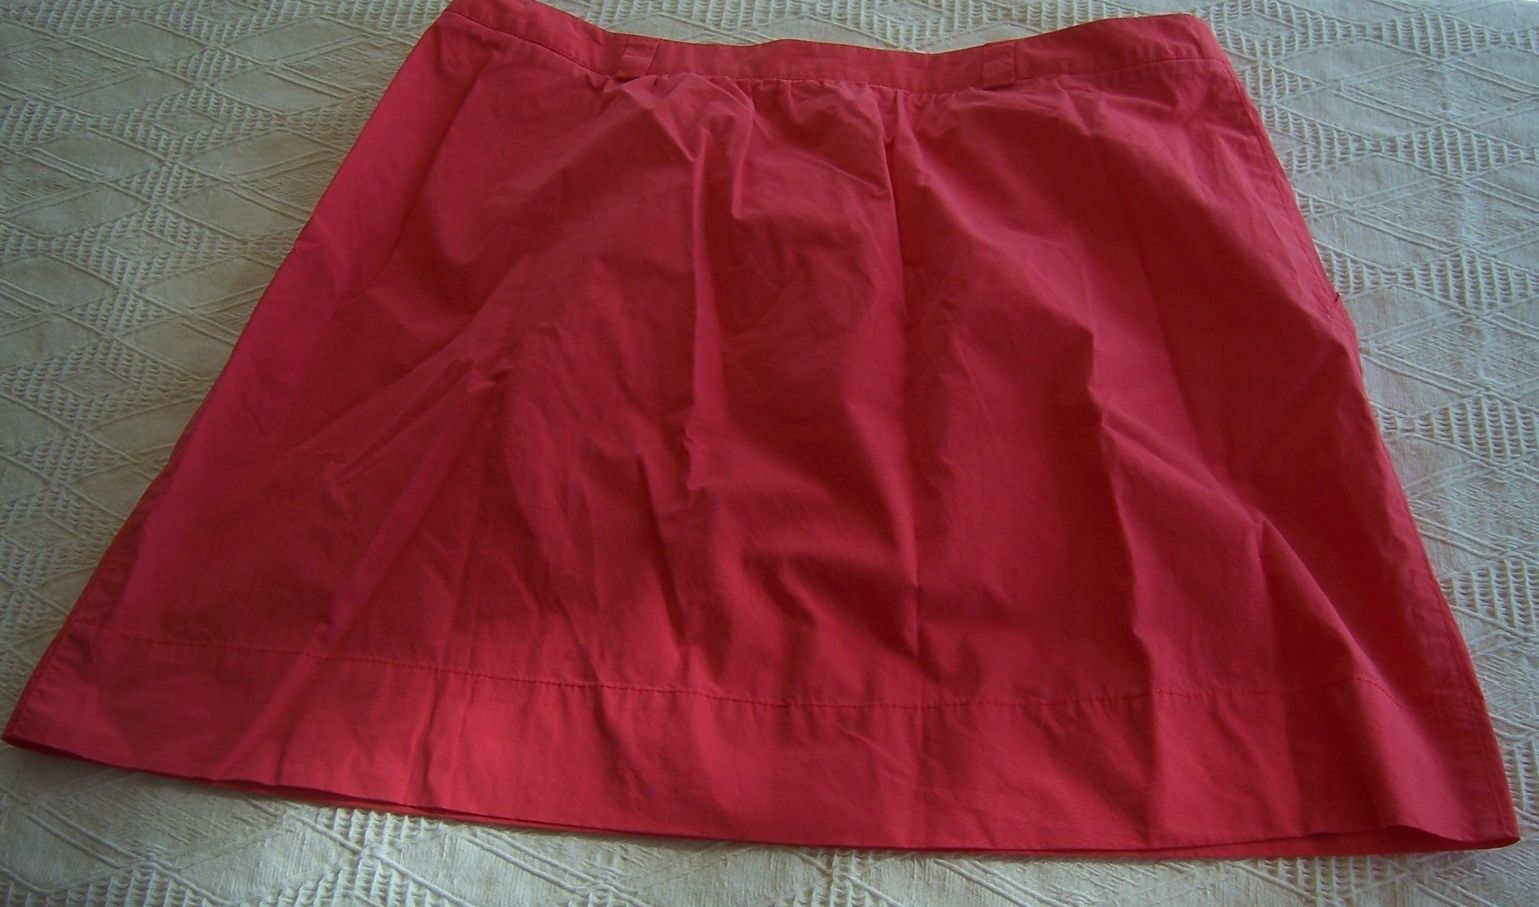 NWT Lacoste Red Strawberry Cotton Skirt  Misses Size 40 (8) Knee Length